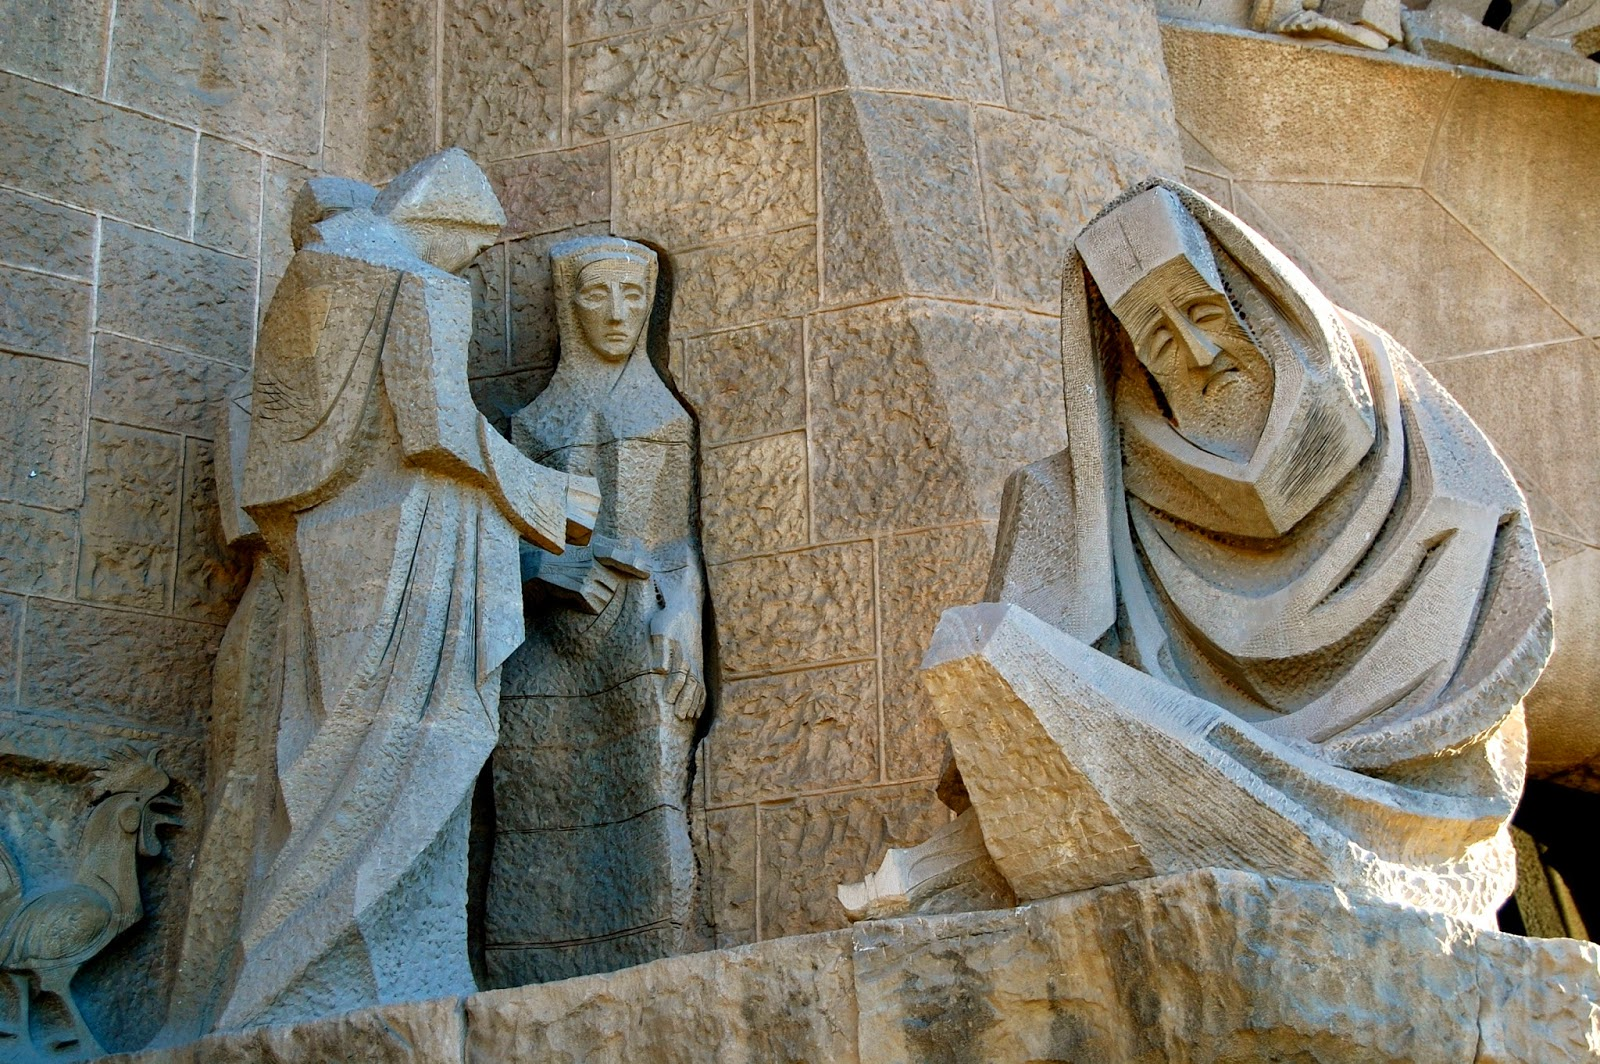 Carvings of Peter's denial on Passion Facade